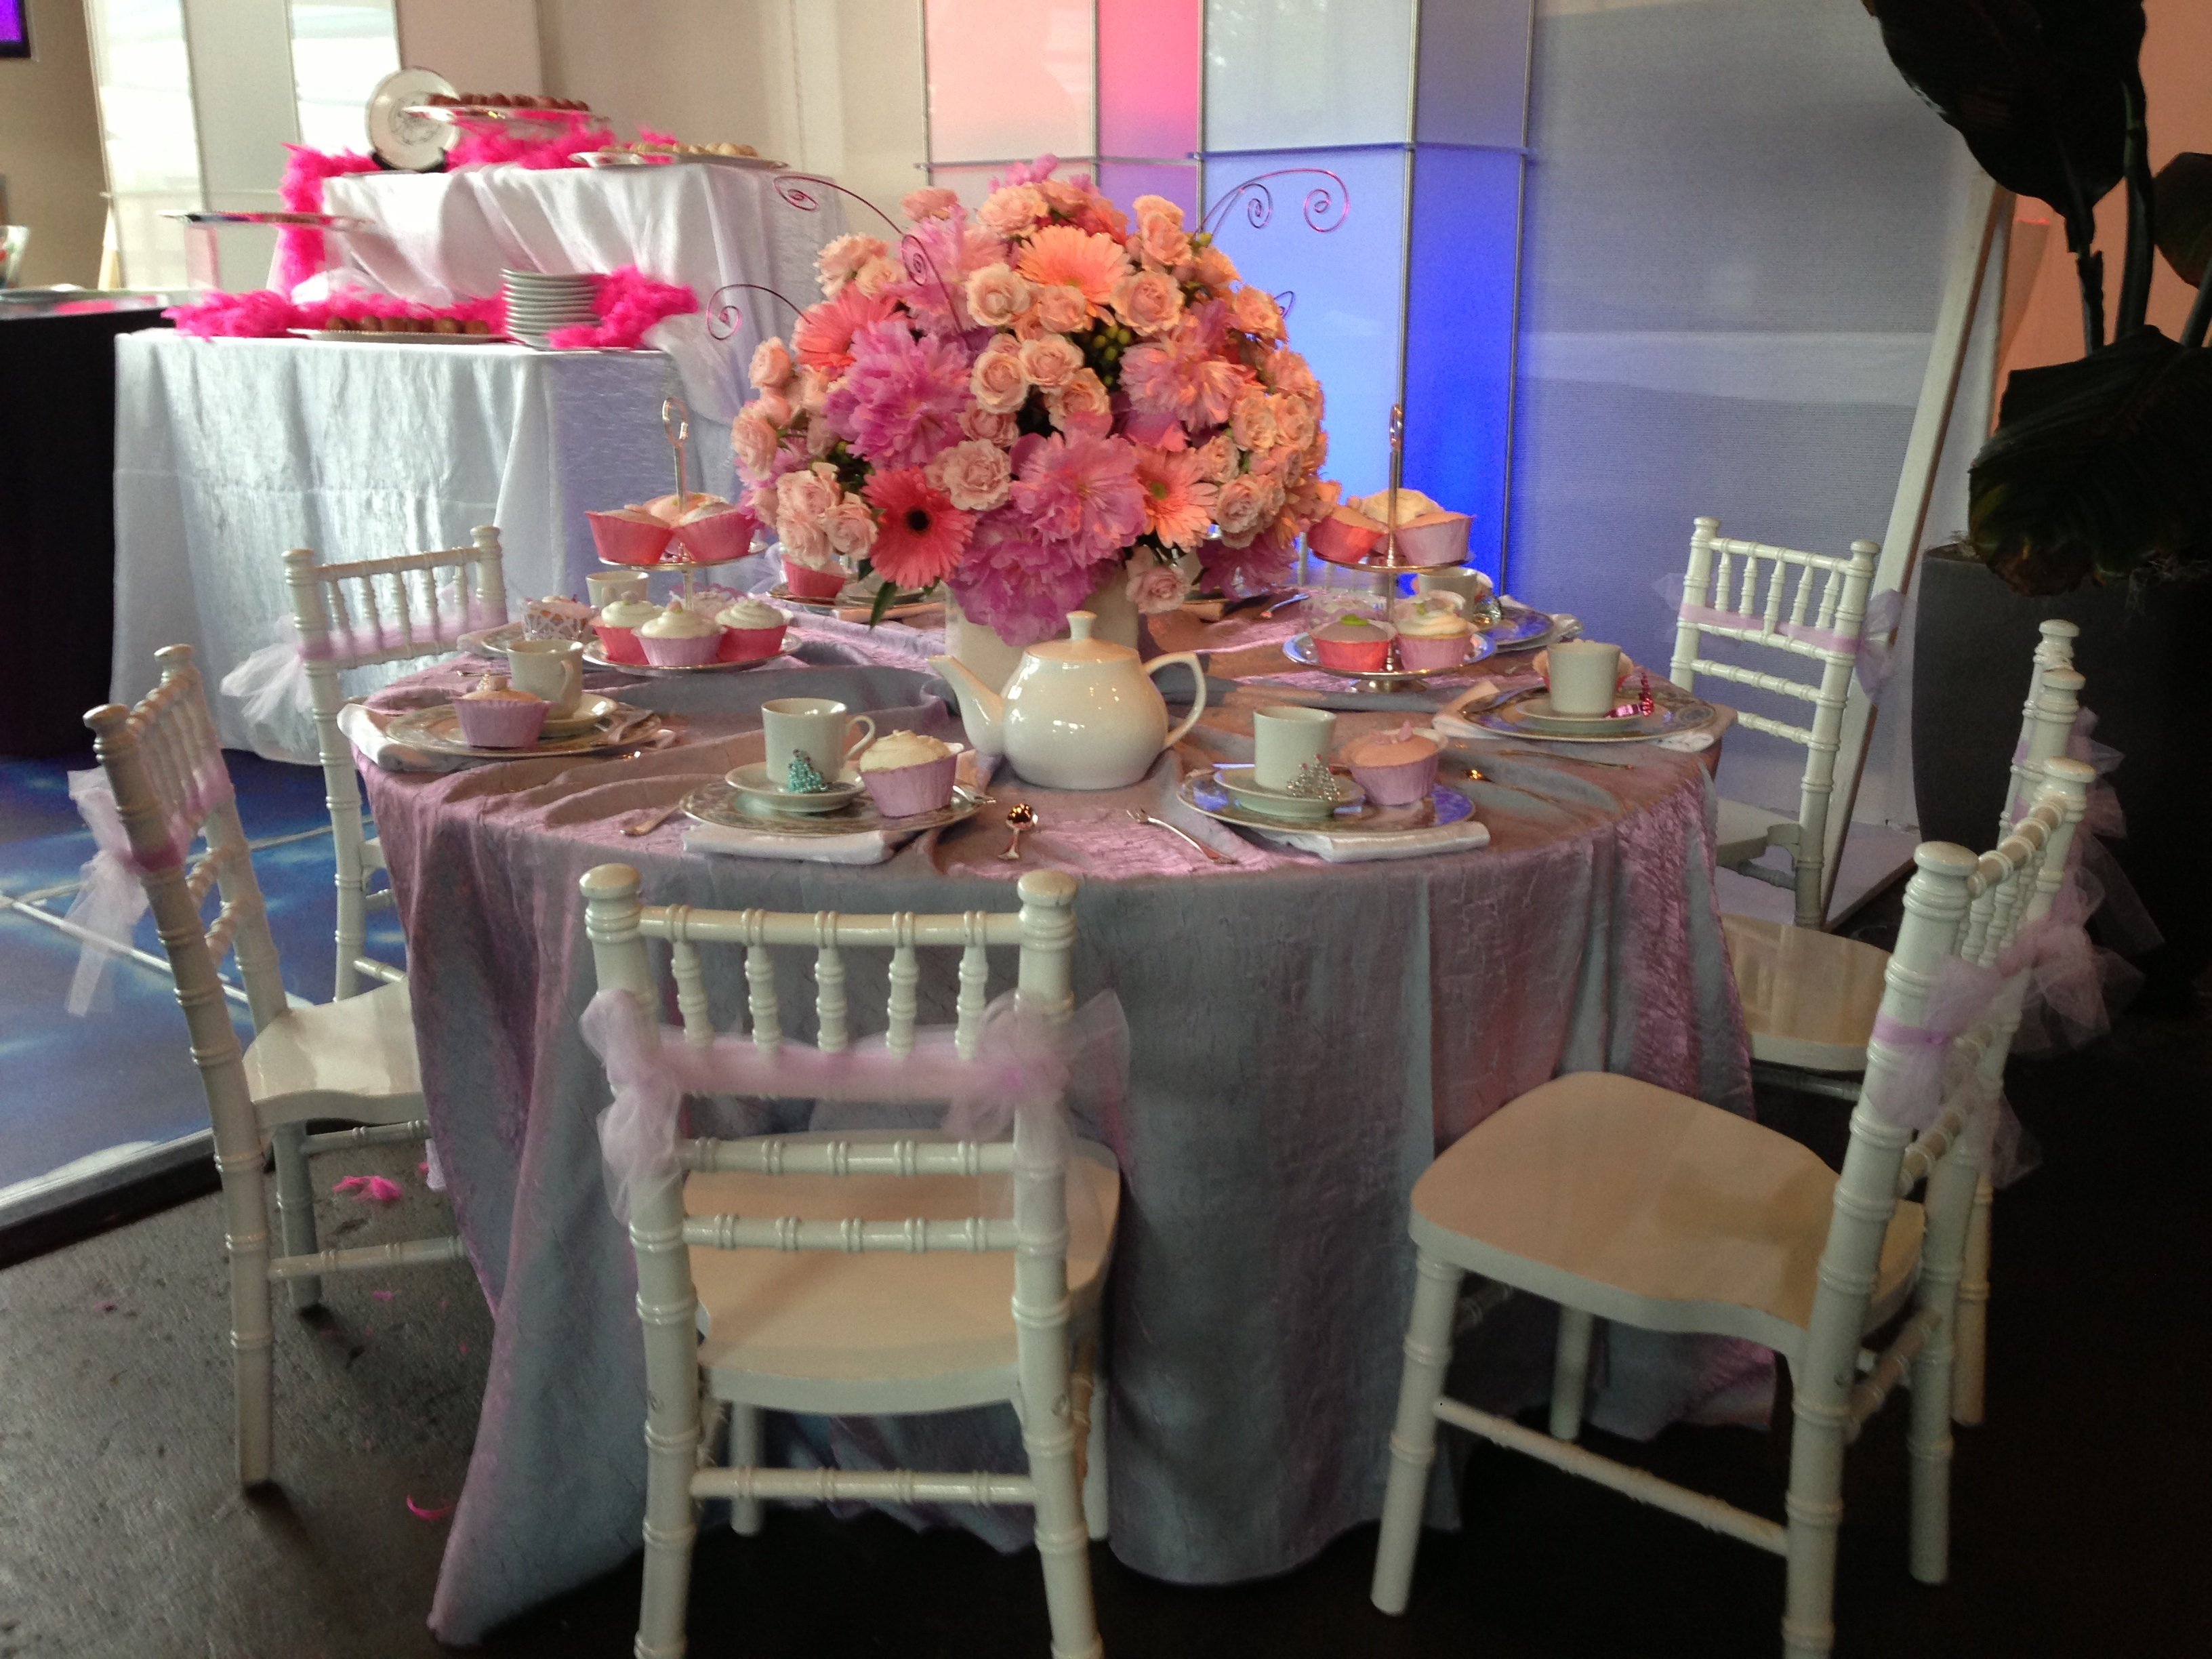 Table Setup Note Adorable Tiny Chivari Chairs Linen And China Can Be Ed From Ducky Bob S Flowers By Dr Delphinium